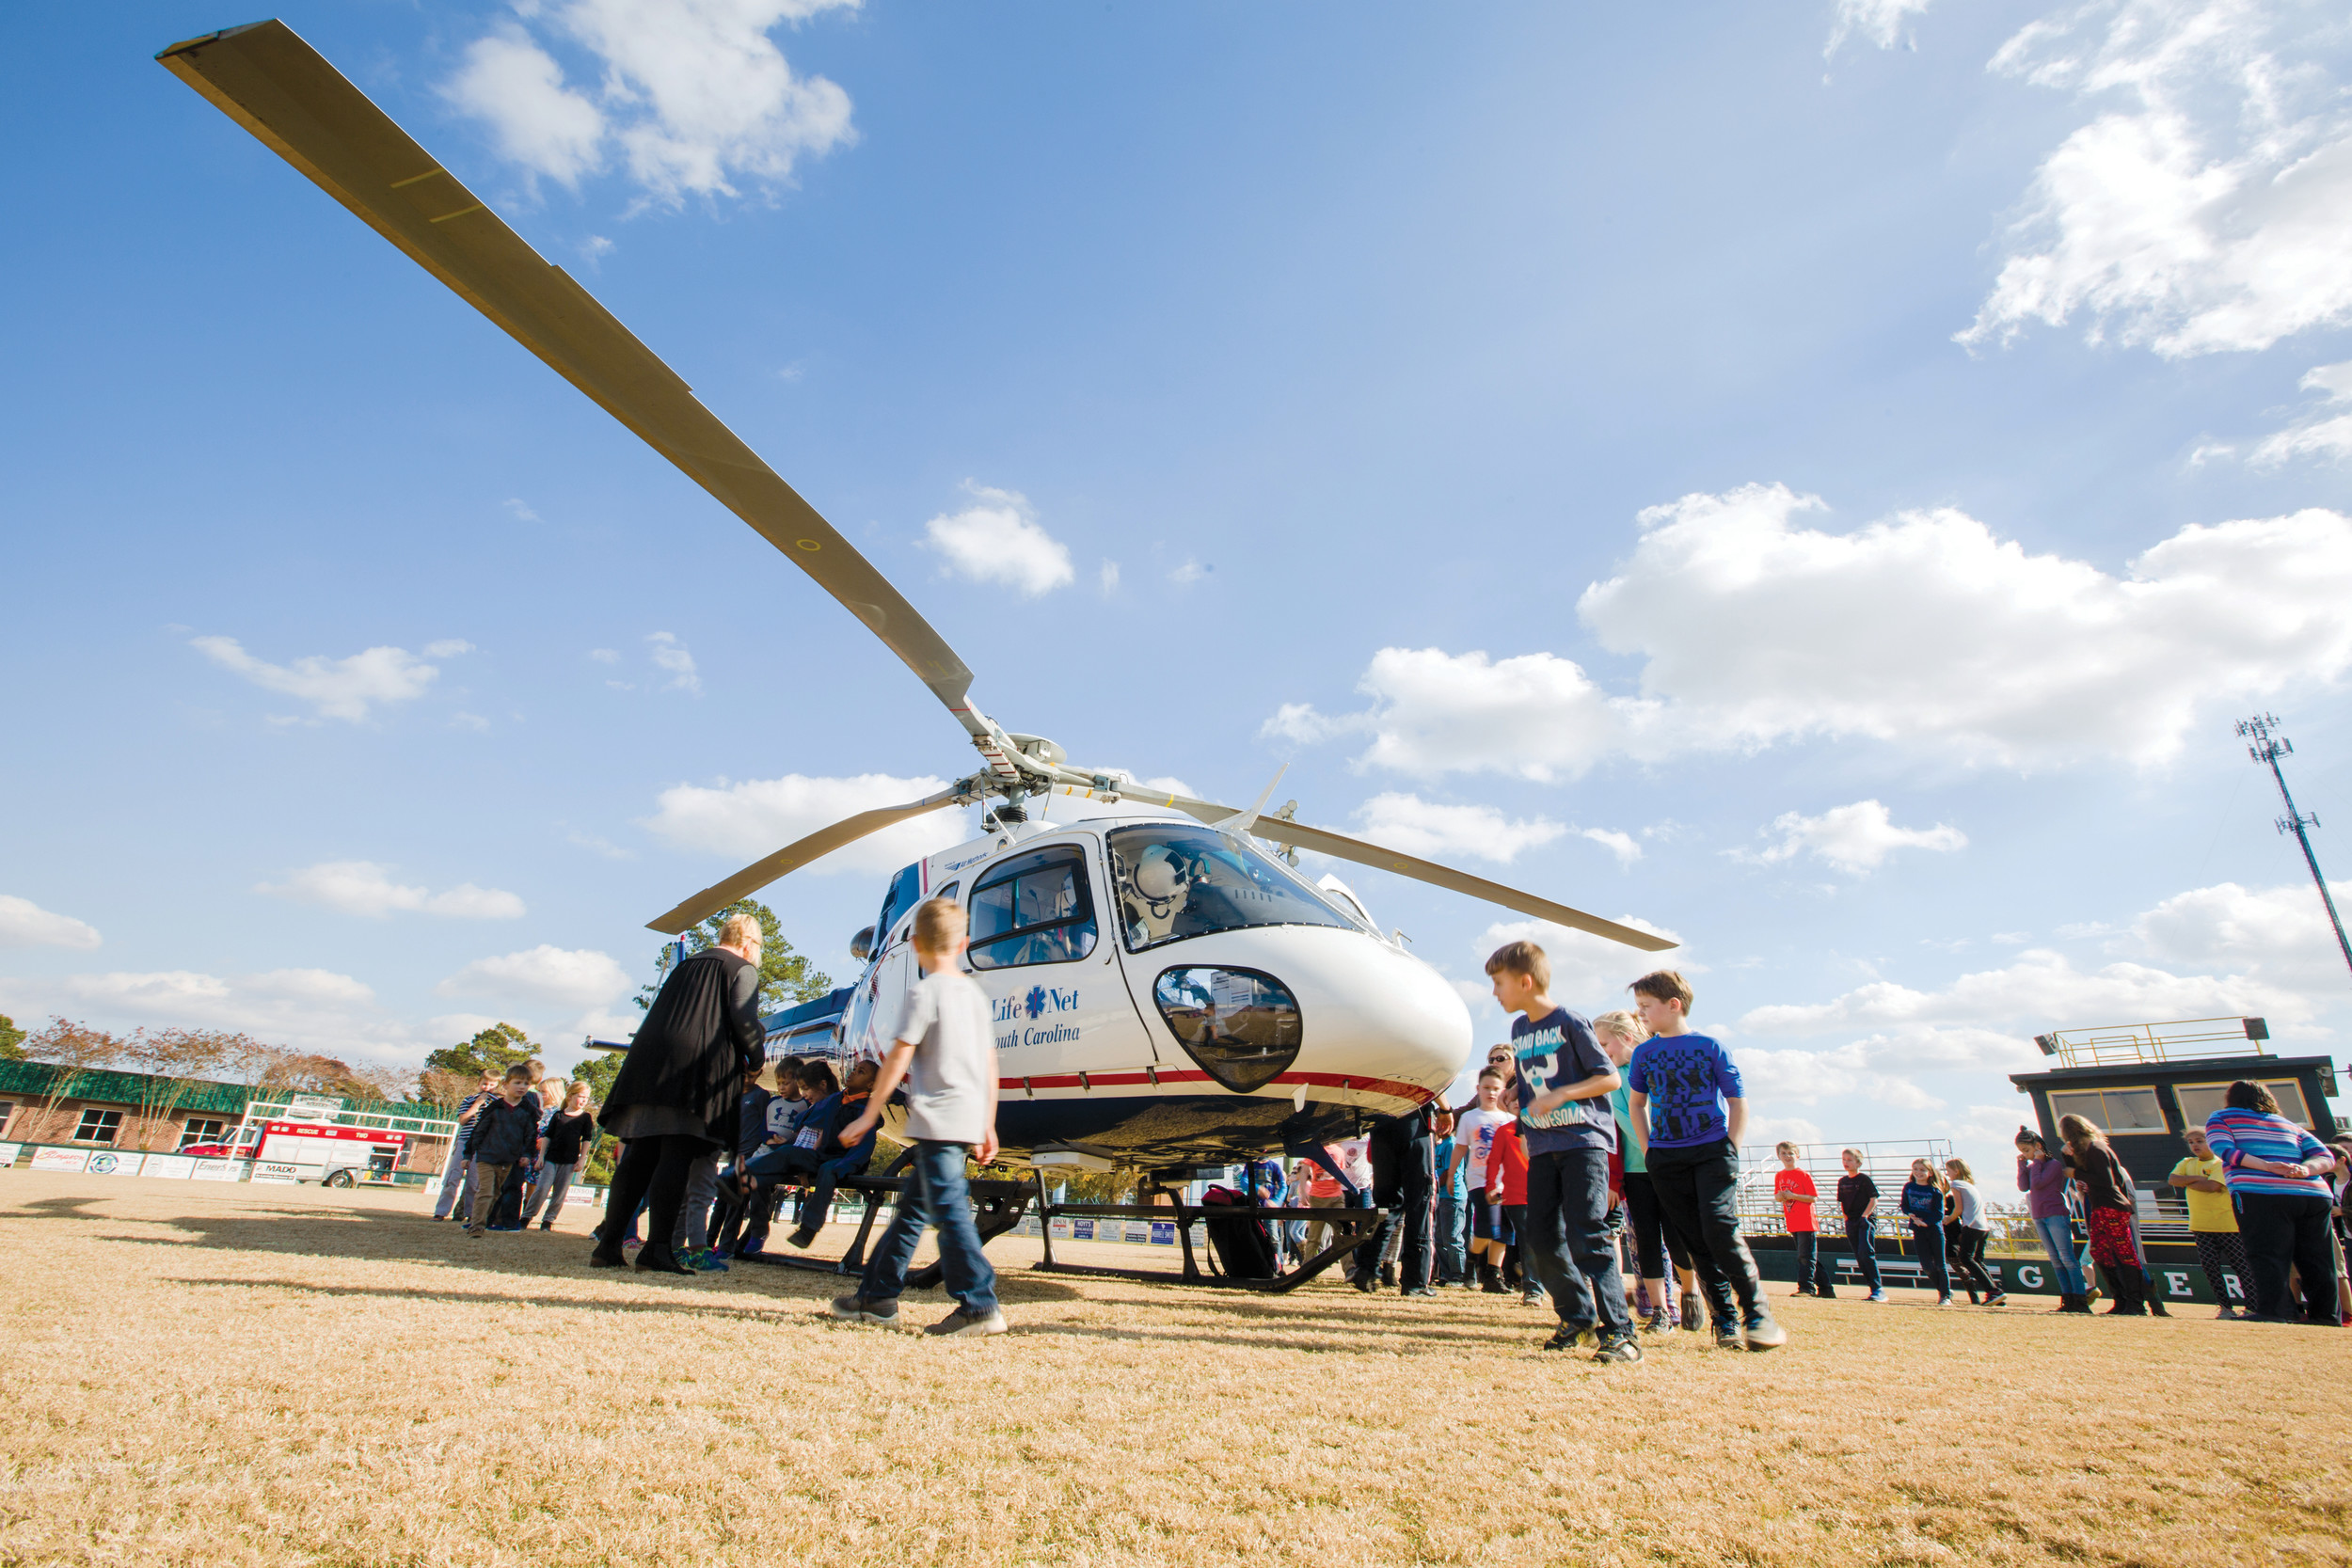 Elementary students from Thomas Sumter Academy check out the Life Net helicopter after it landed on the school's football field during a demonstration.